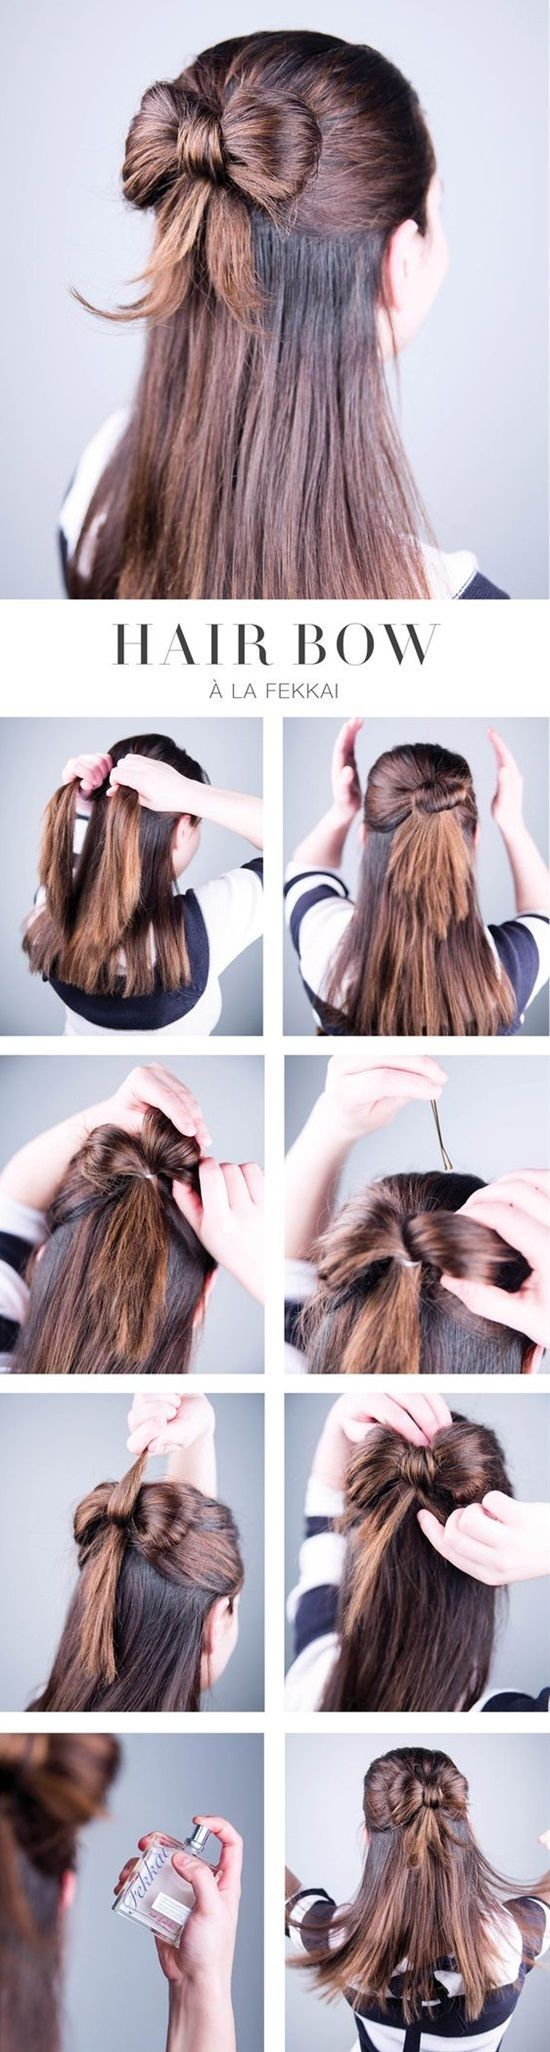 How To Do Hairstyles 120 Best Hairstyles Images On Pinterest  Hairstyle Ideas Simple